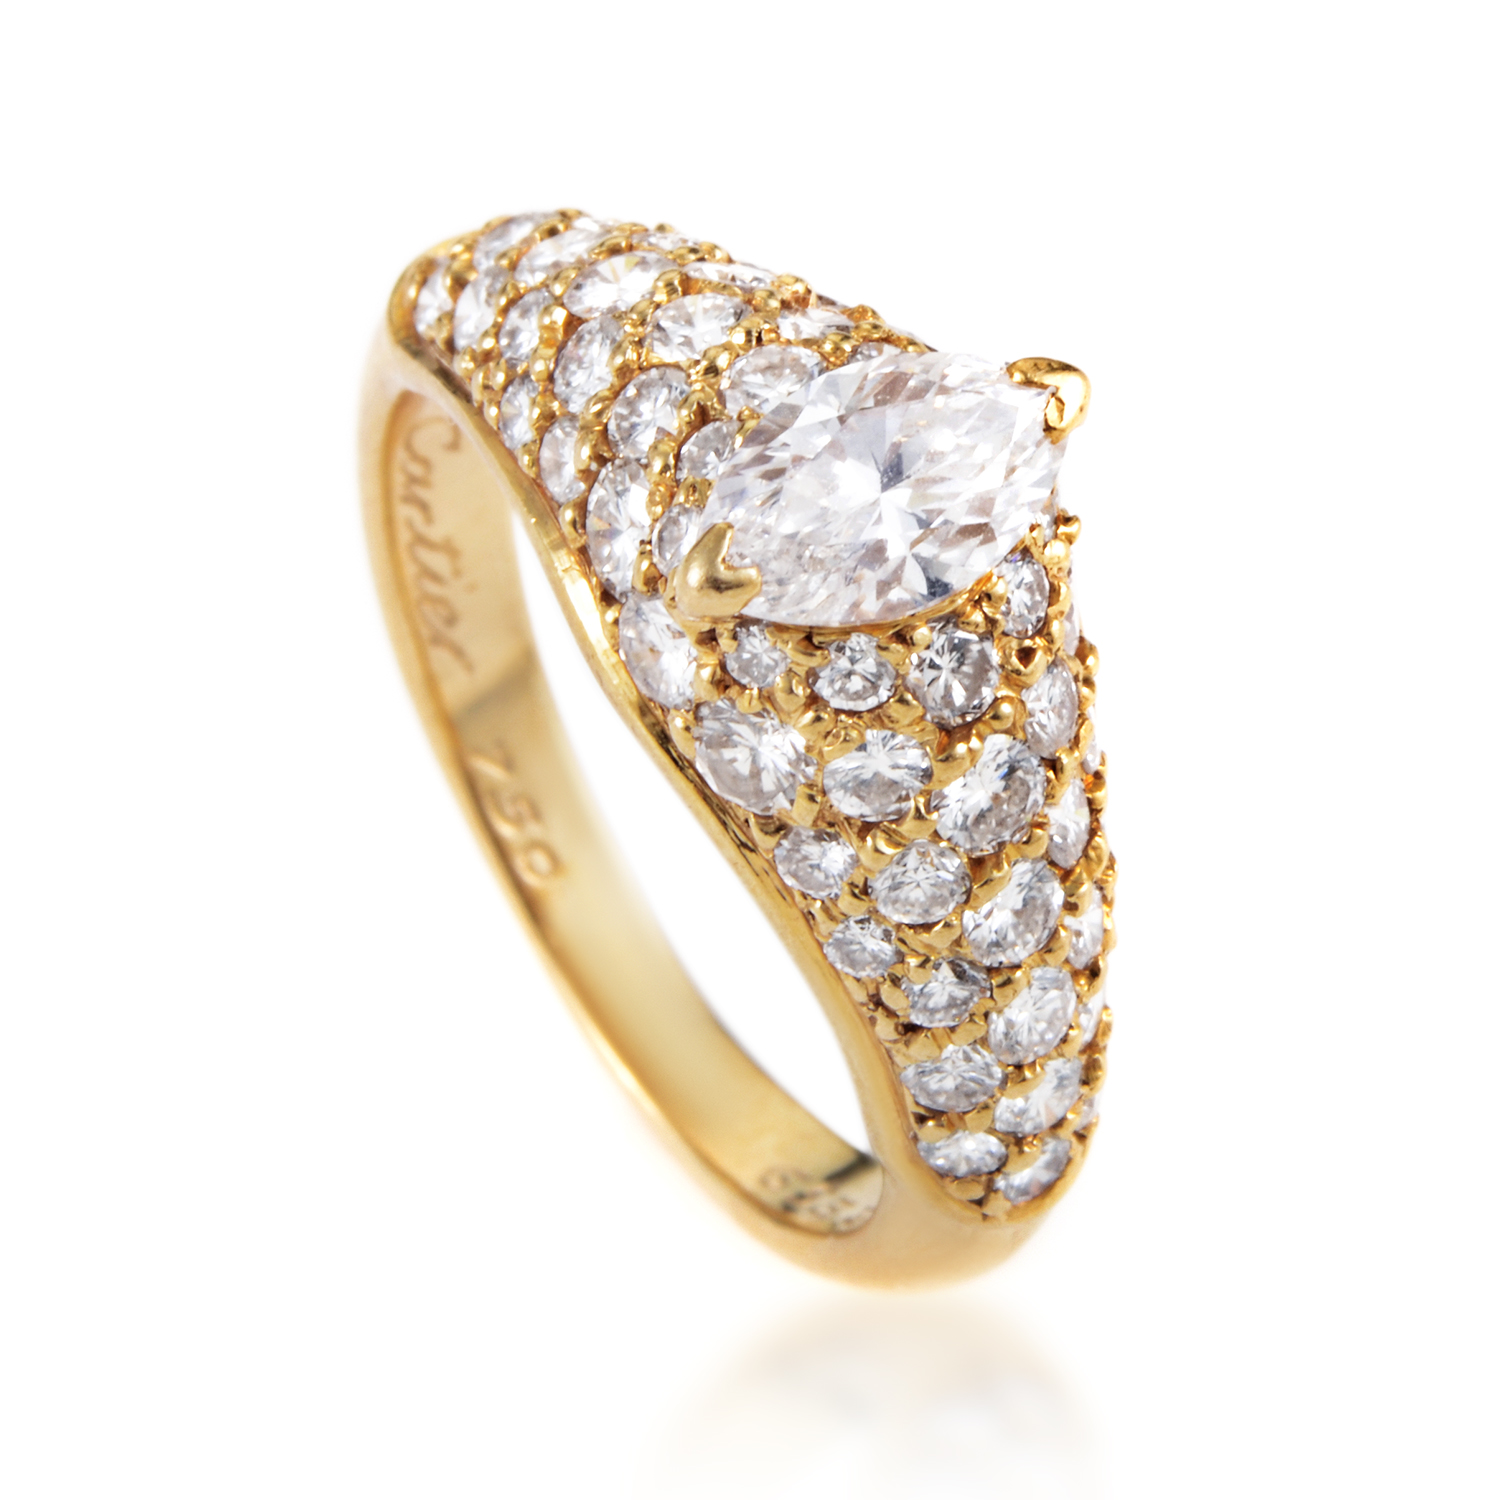 Cartier Women's 18K Yellow Gold .60ct Marquise Diamond Engagement Ring